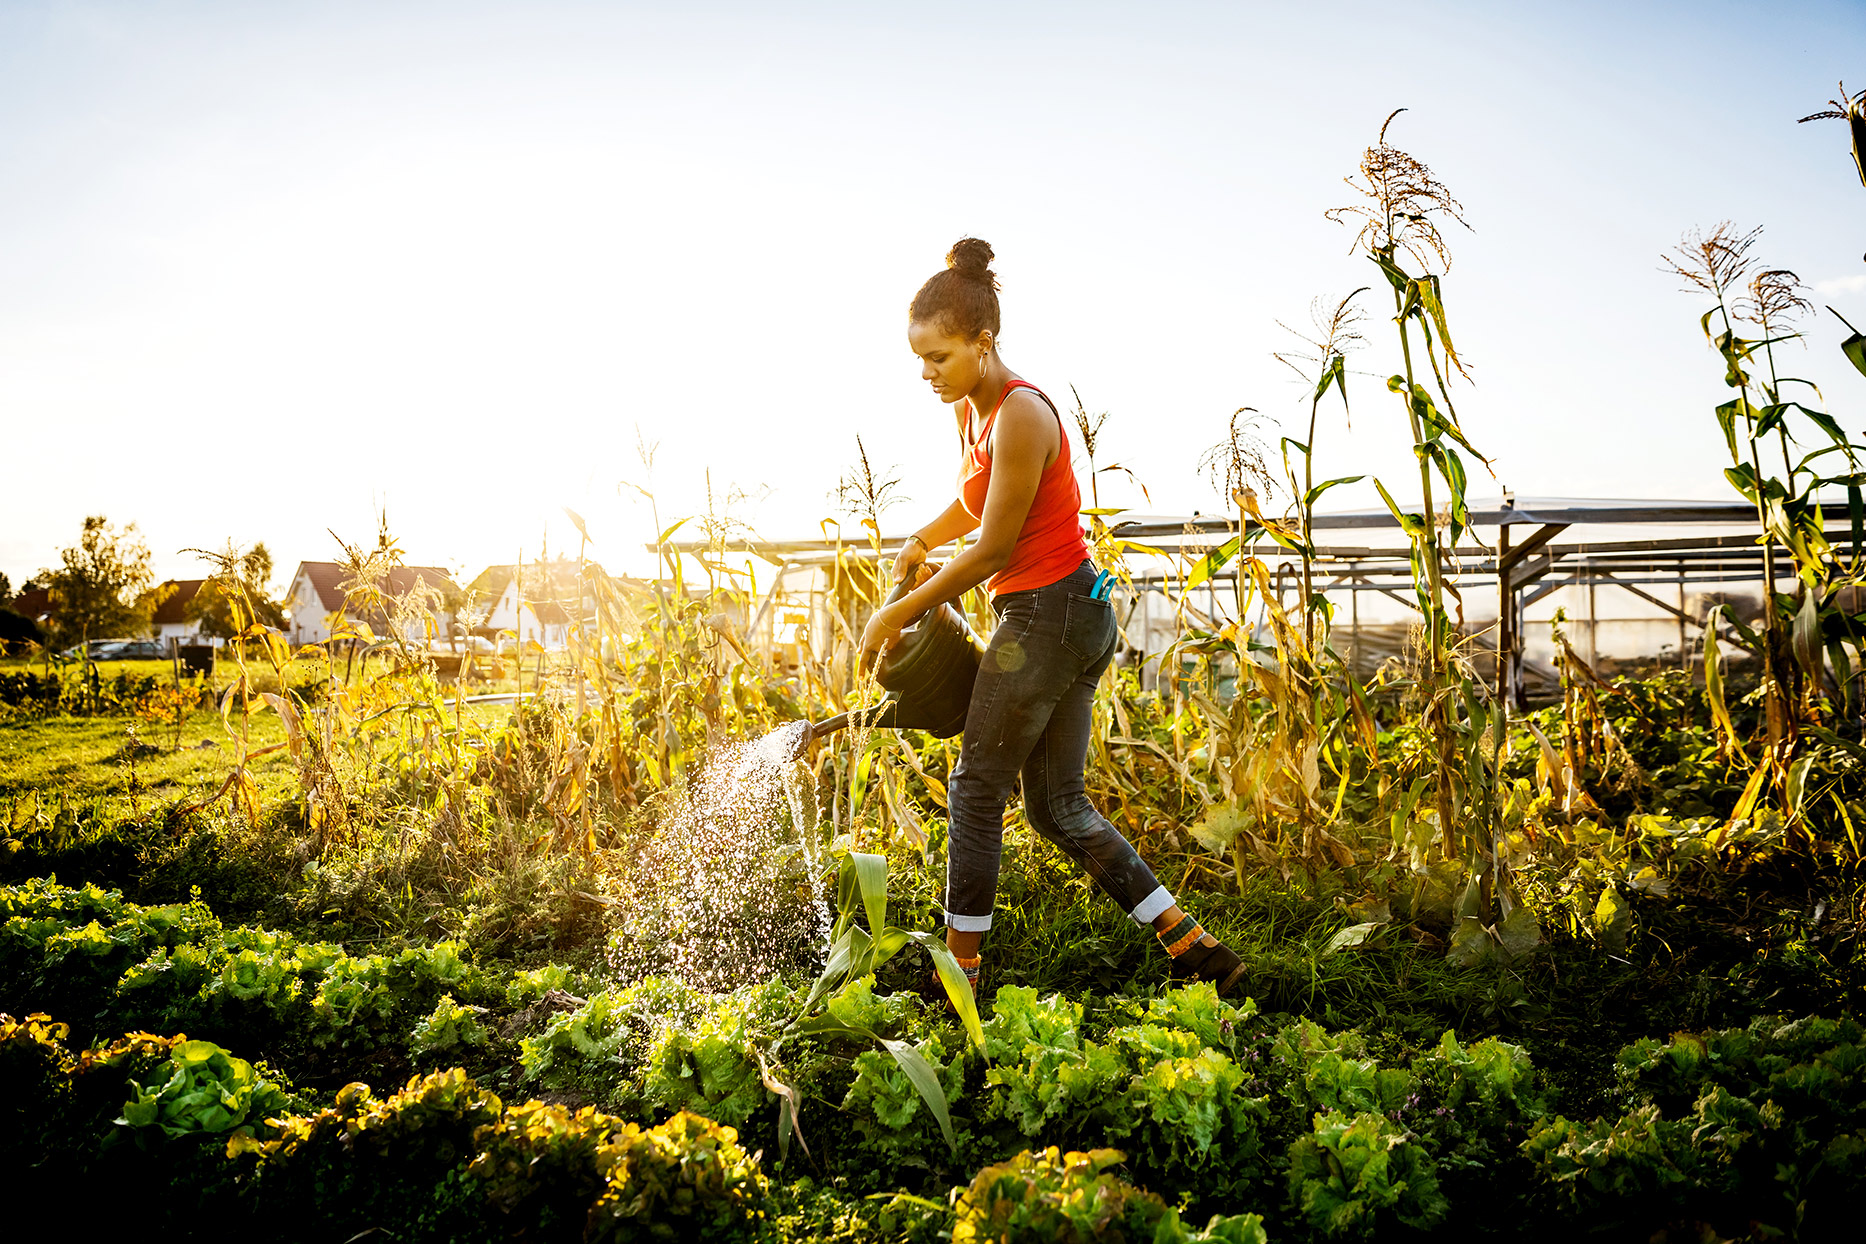 Person watering crops